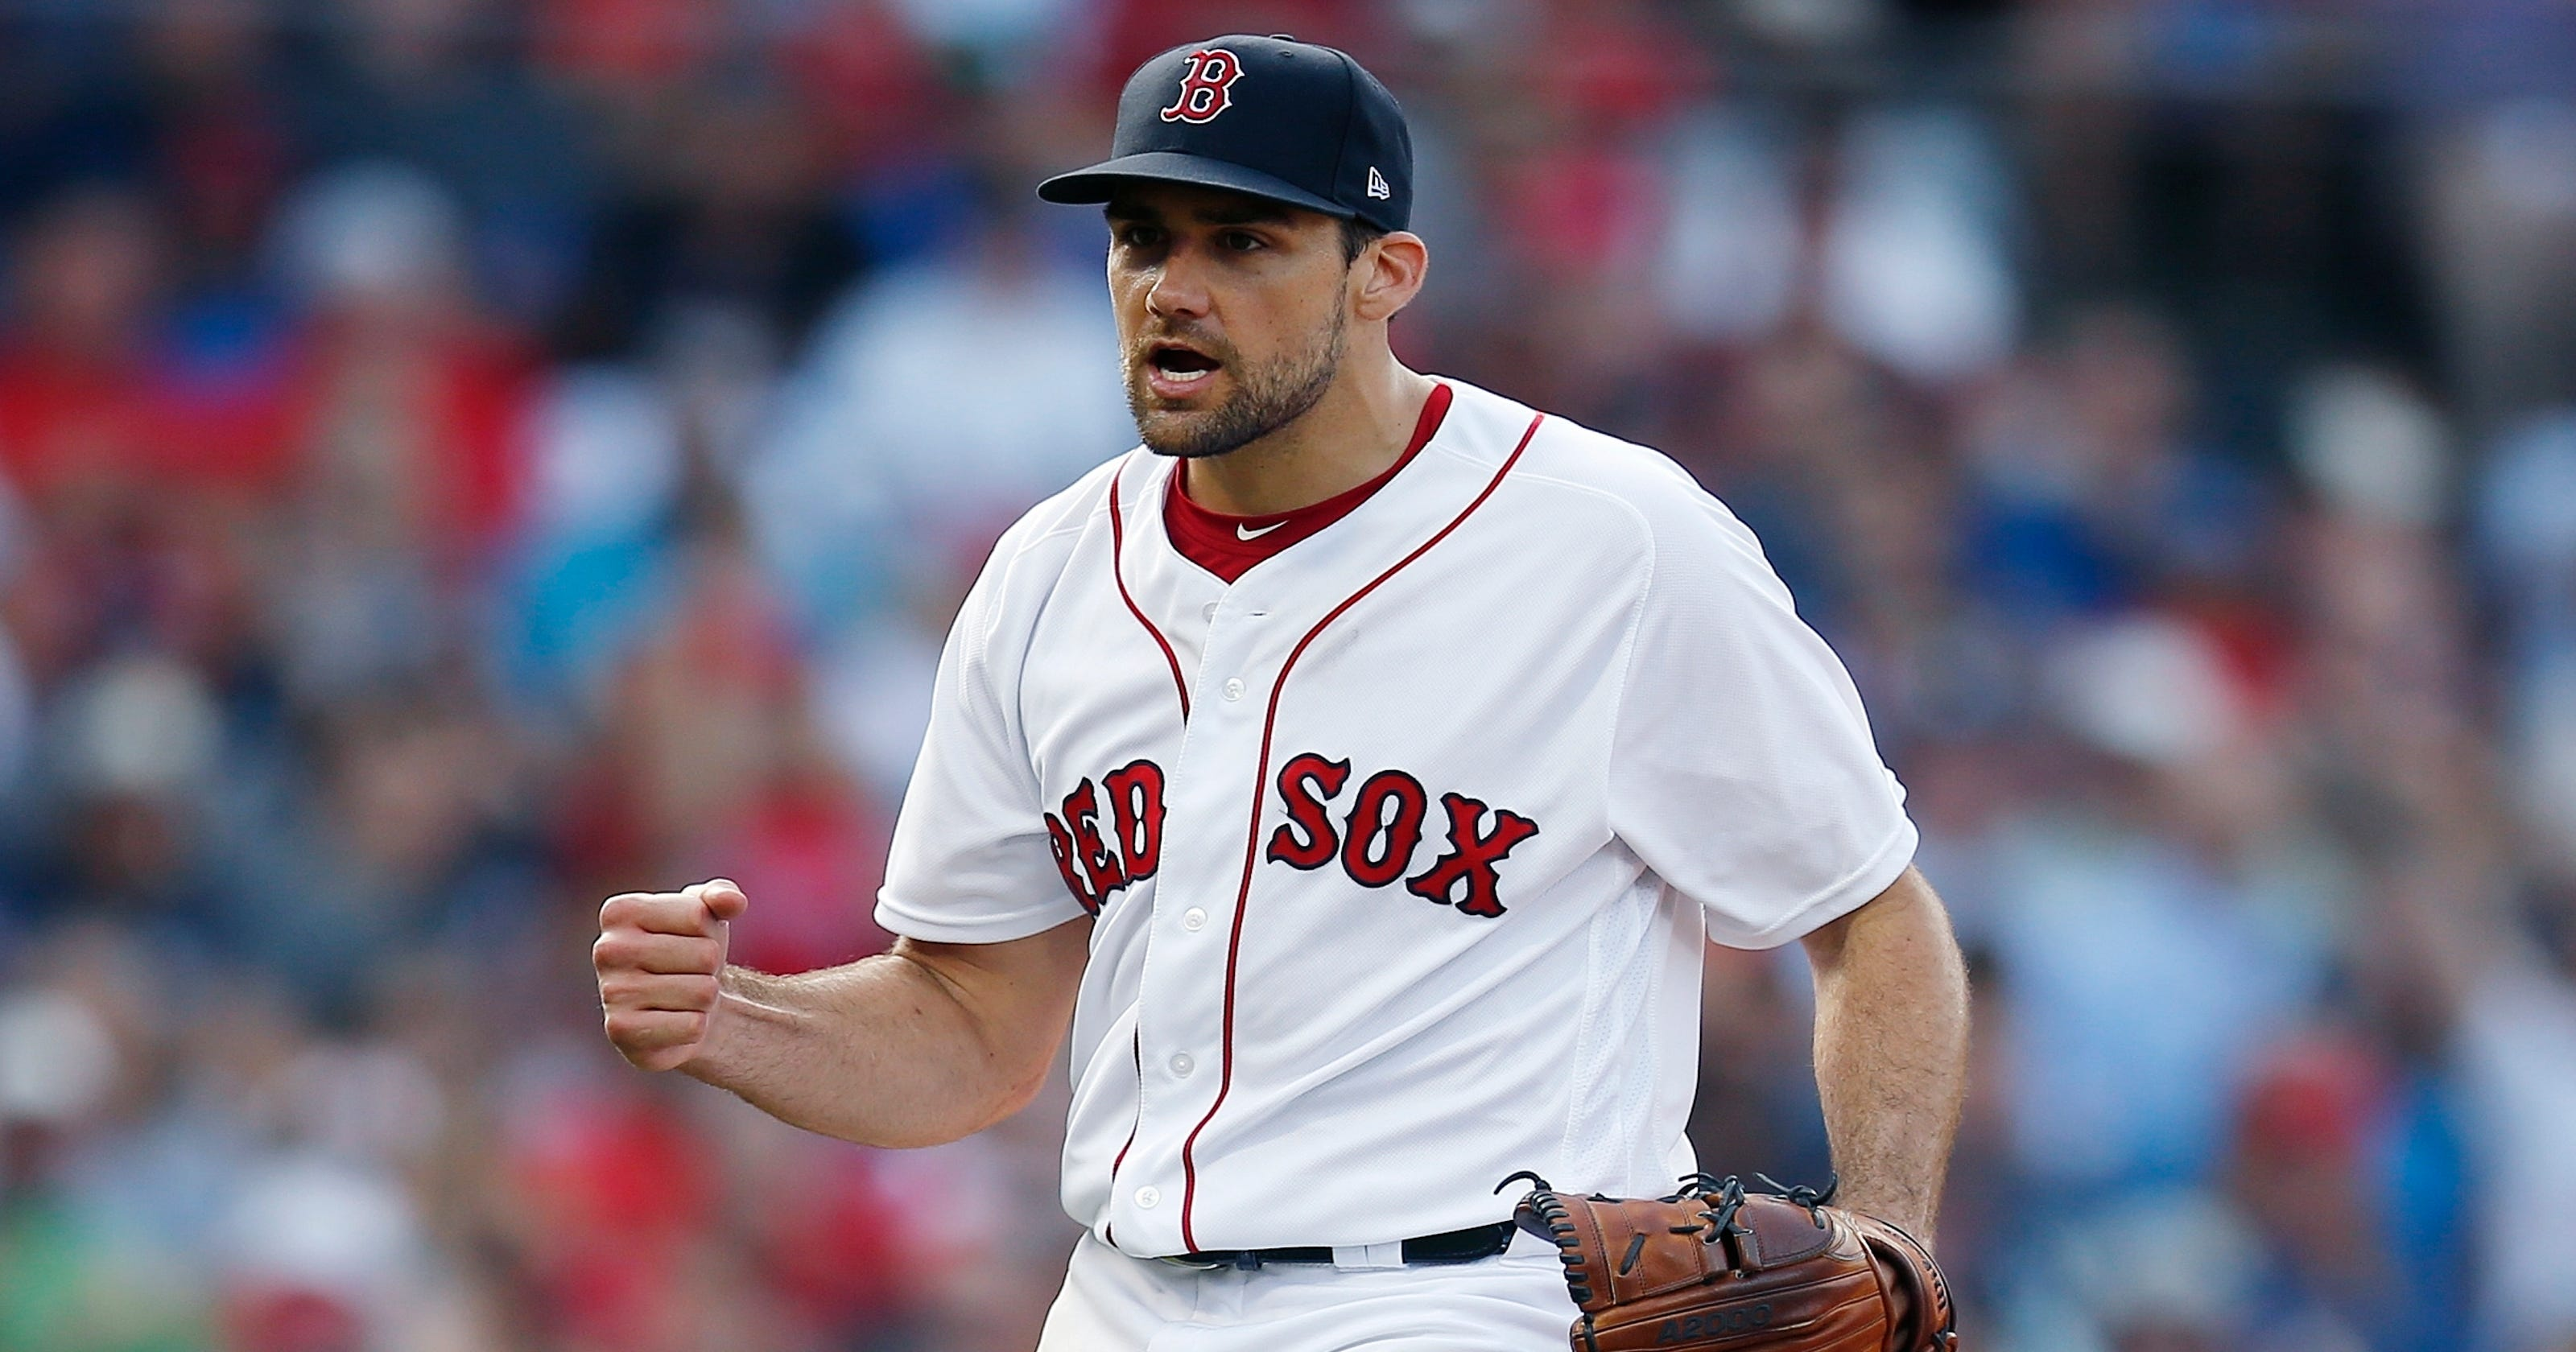 newest 09faa 8008f NY Yankees miss on Nathan Eovaldi as rumored target to sign ...